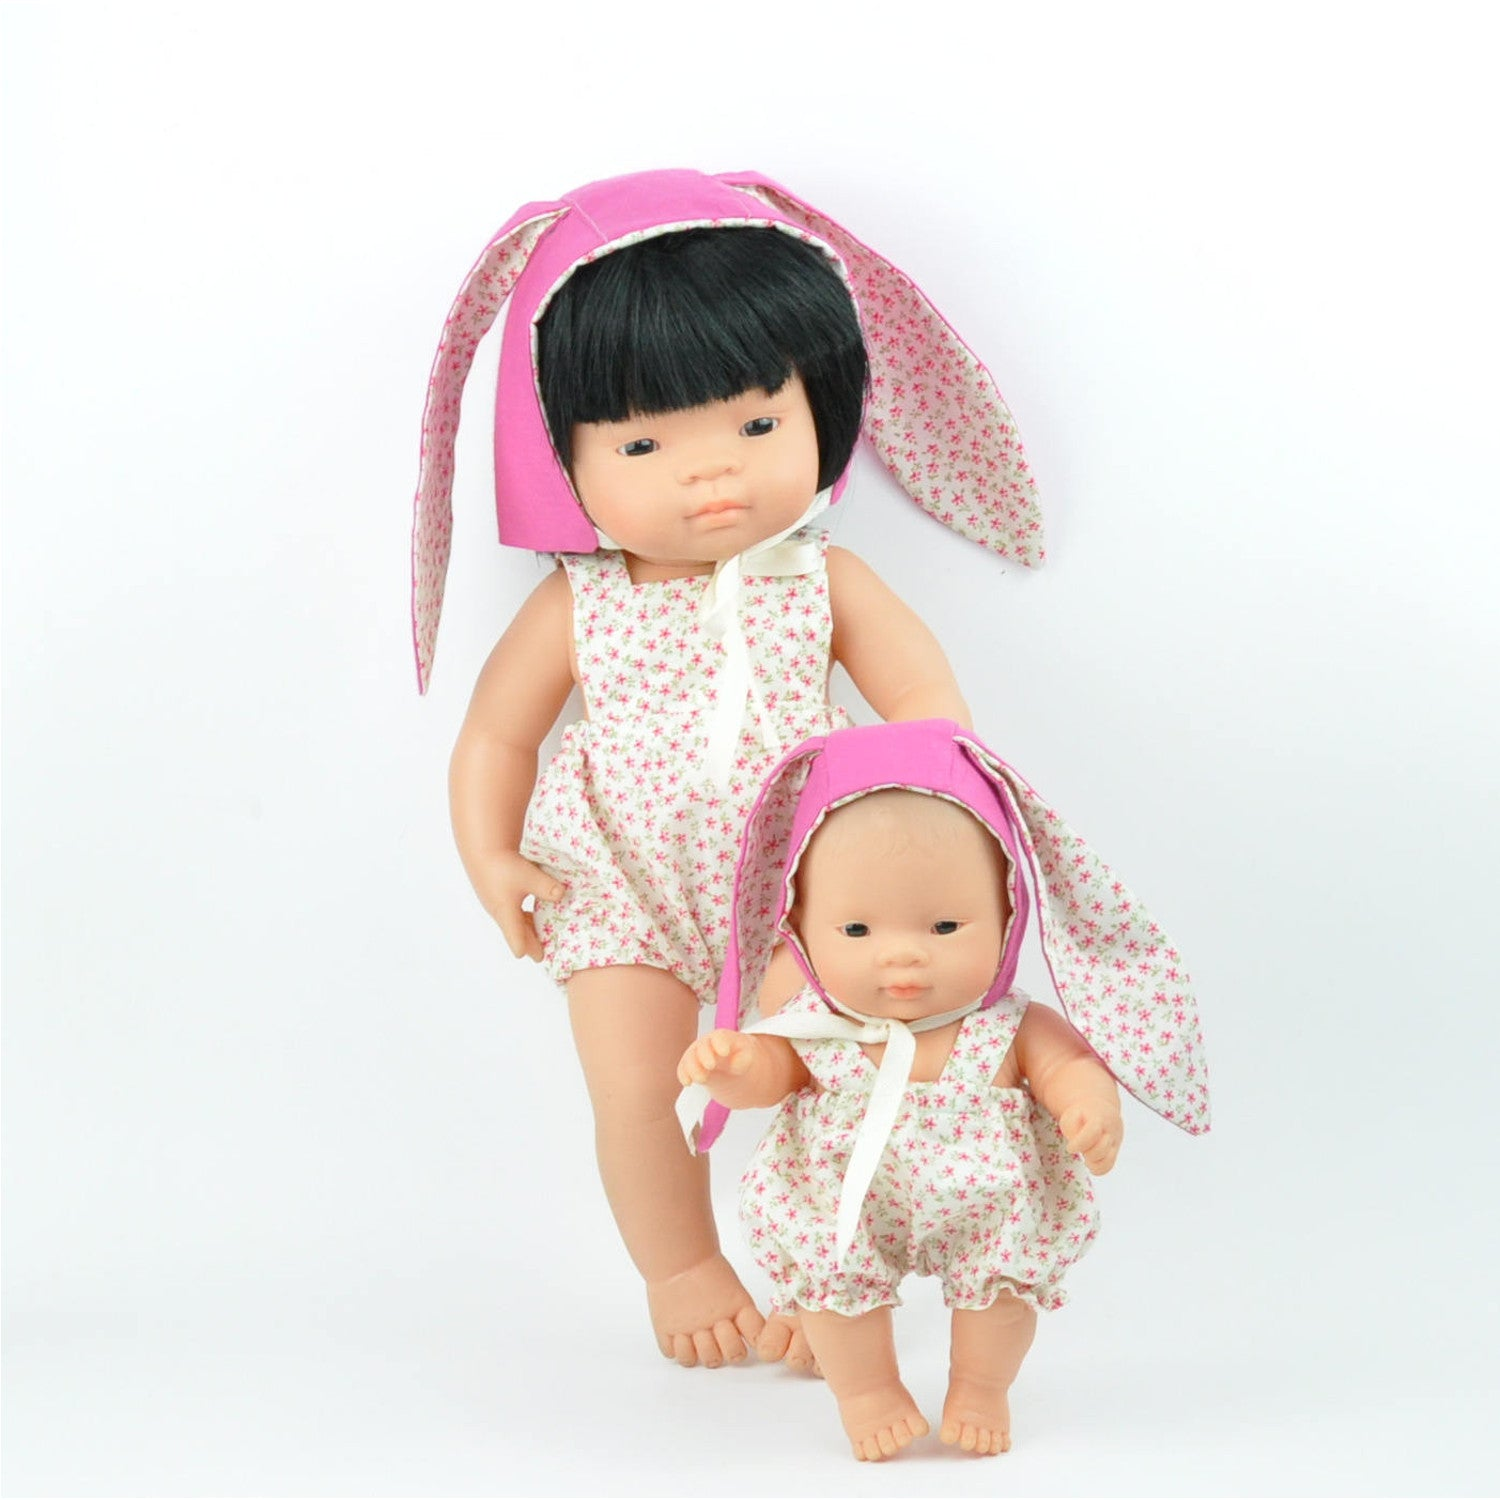 Monkey kids rotorua beautiful baby gifts stylish kids toys miniland 38cm dolls clothes easter floral romper with bunny ears bonnet negle Choice Image